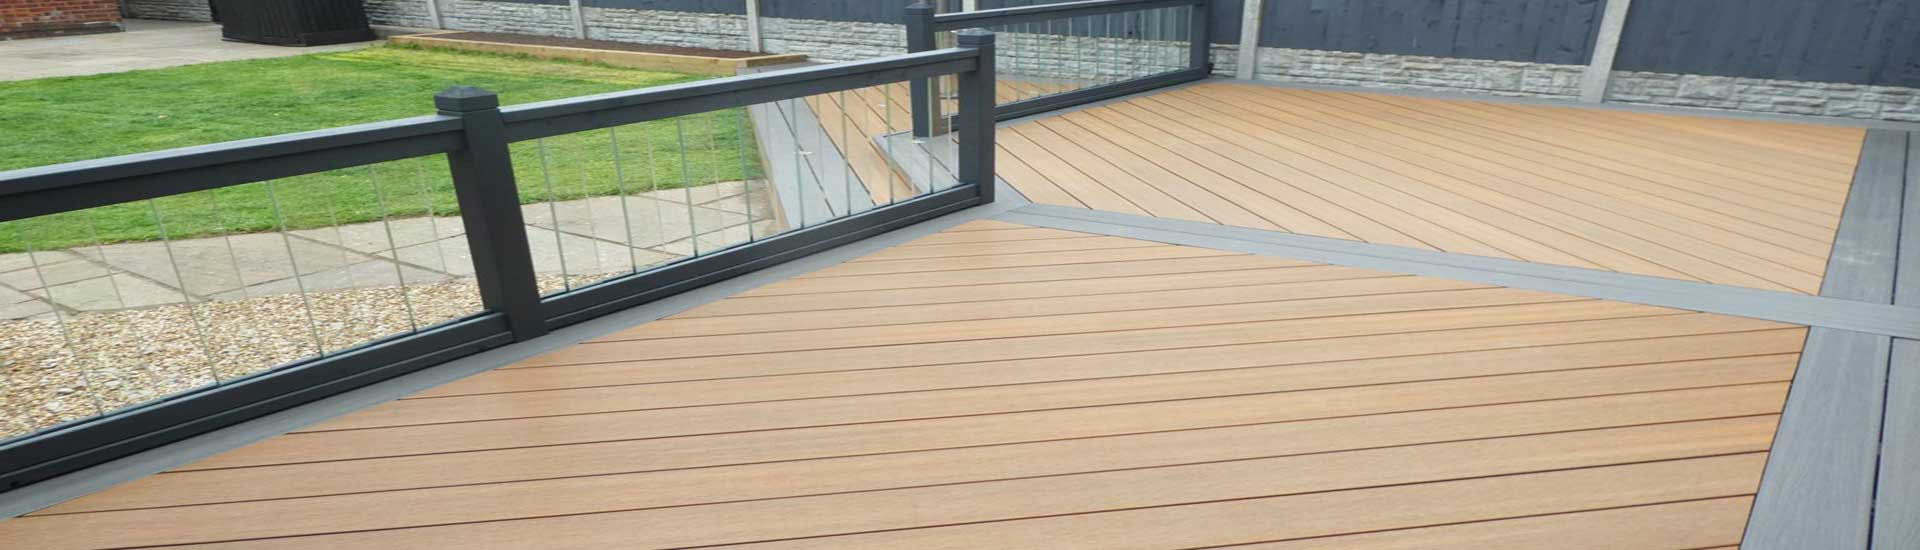 Composite decking Installers Glasgow